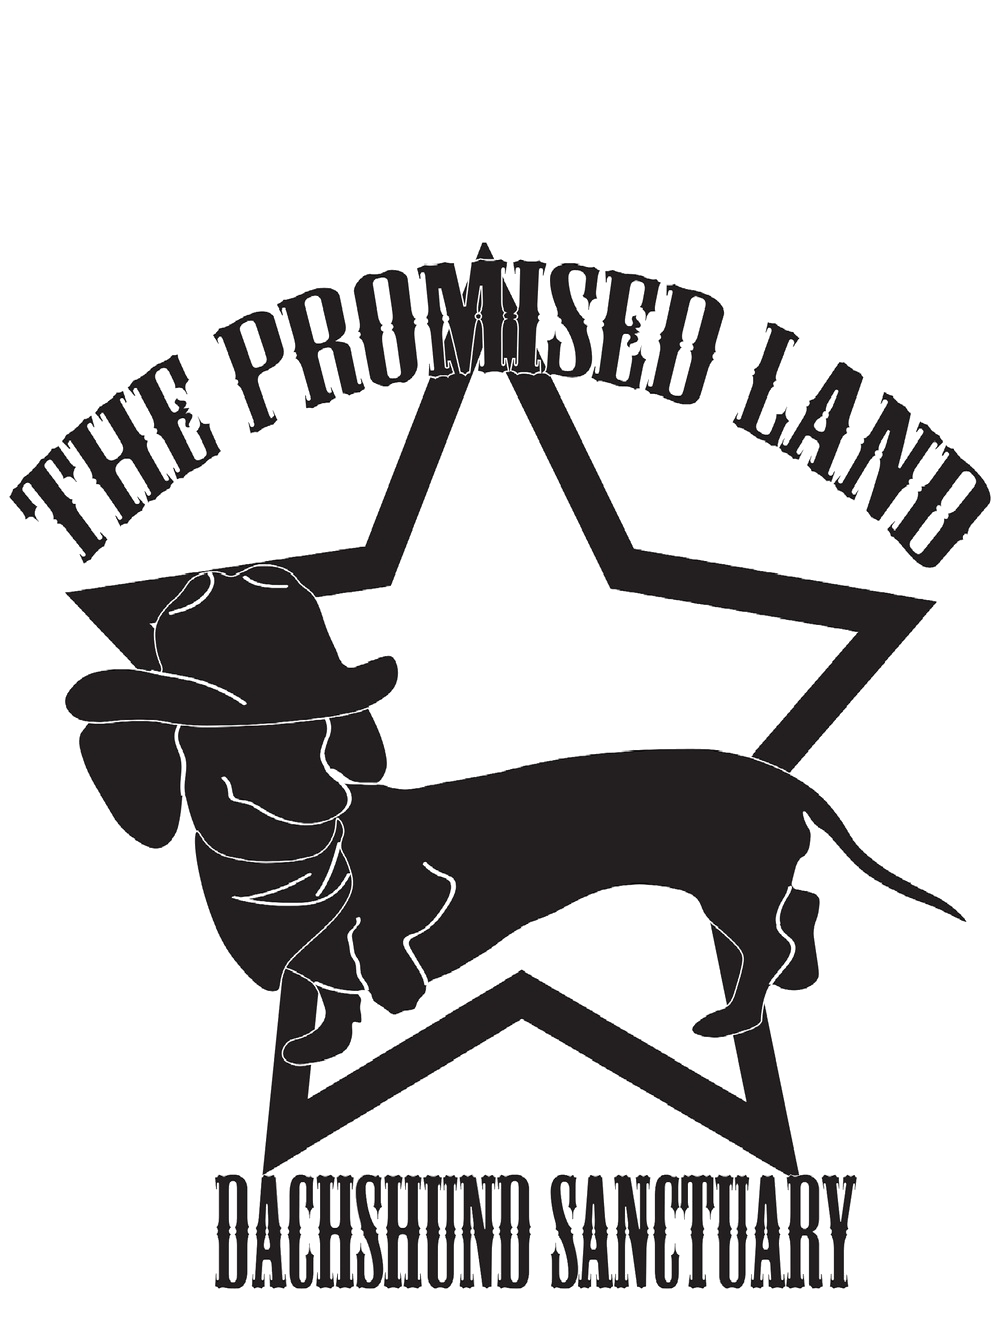 Promised Land Dachshund Sanctuary